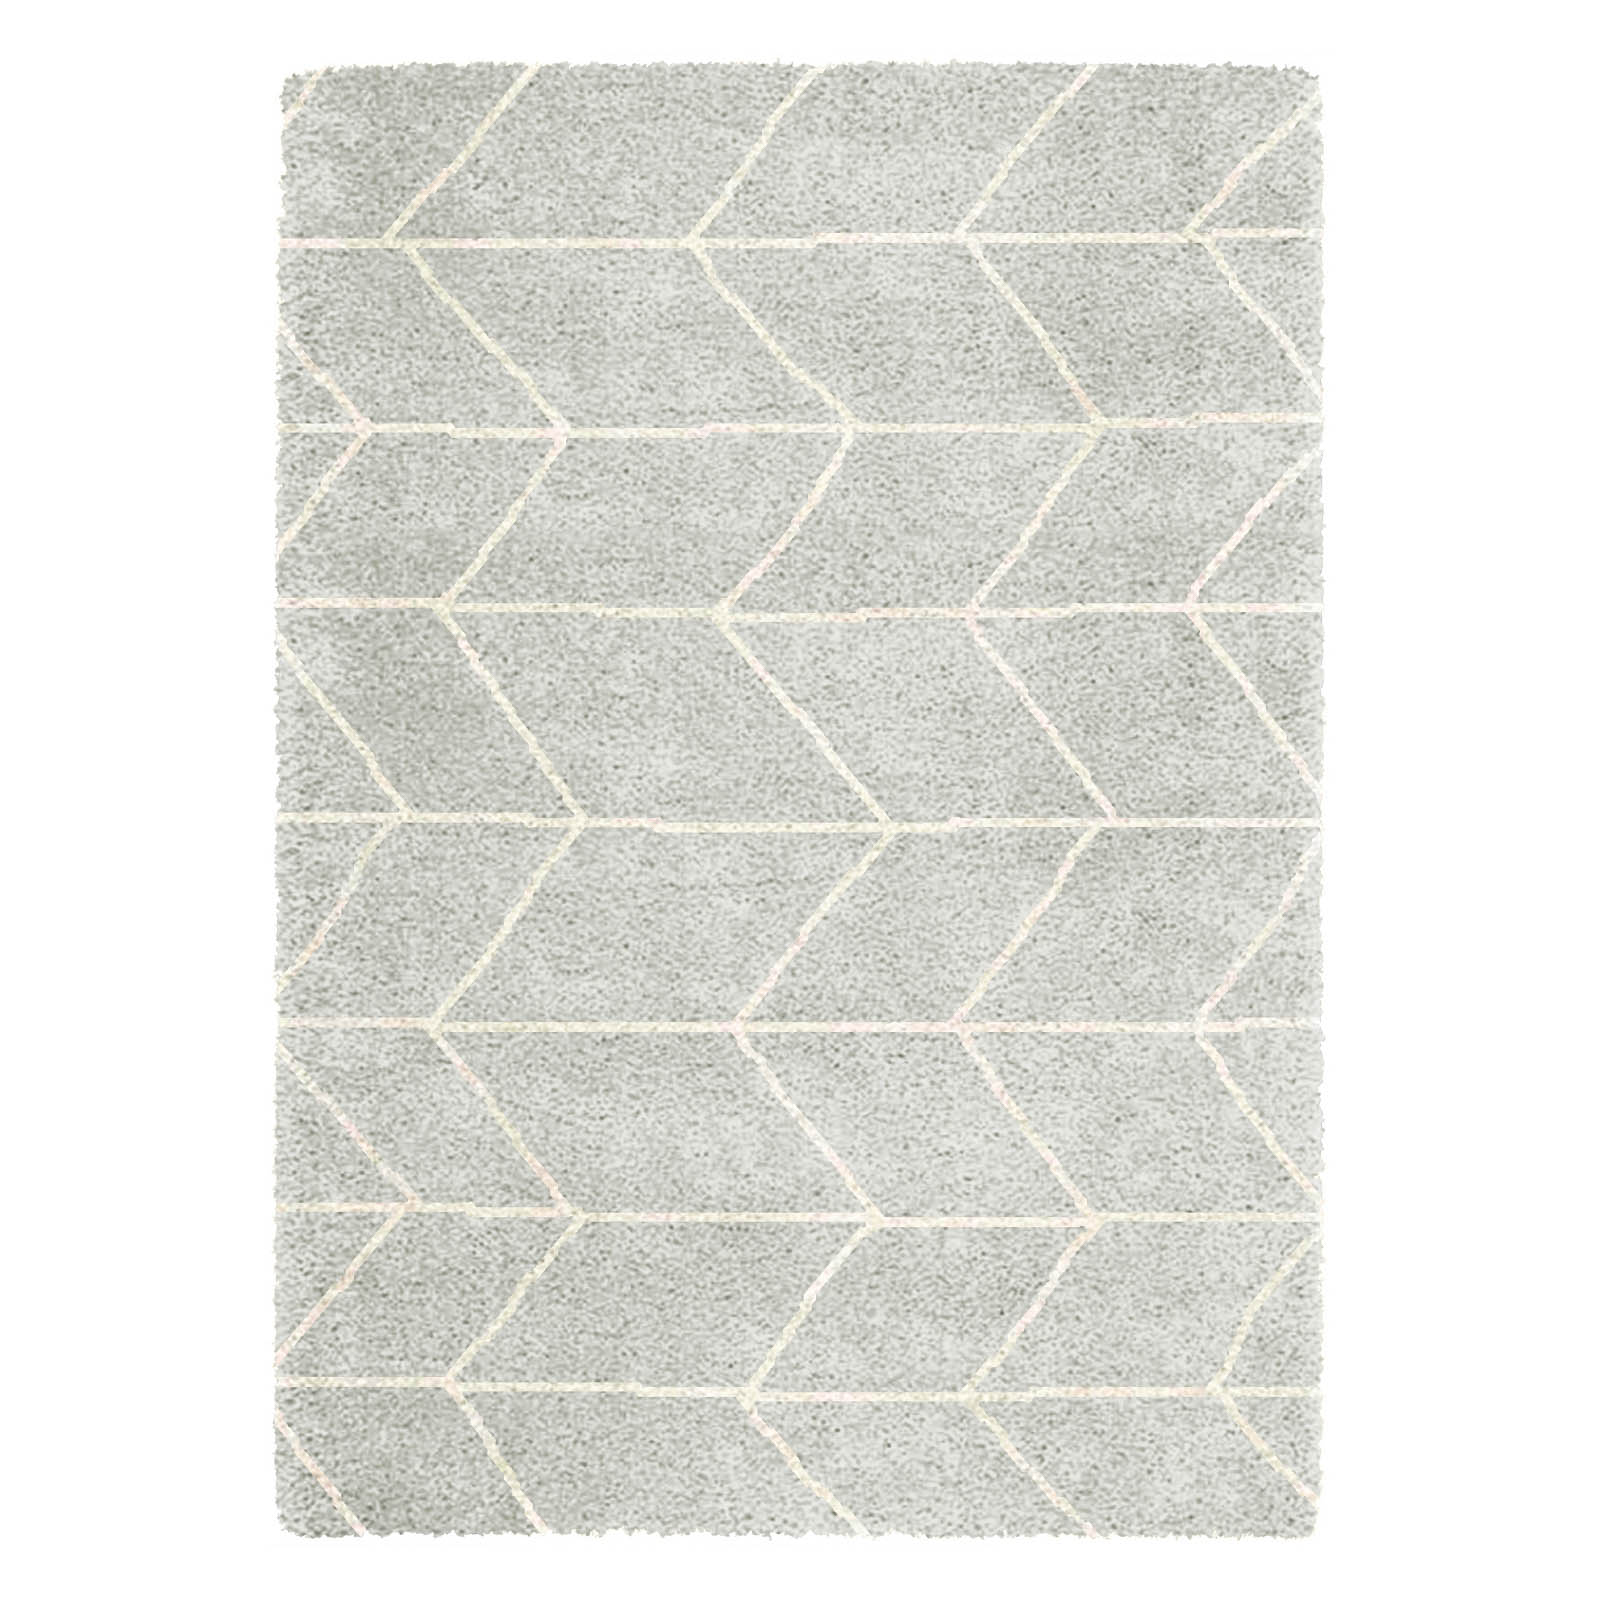 Logan Rugs LG03 in Grey and Ivory